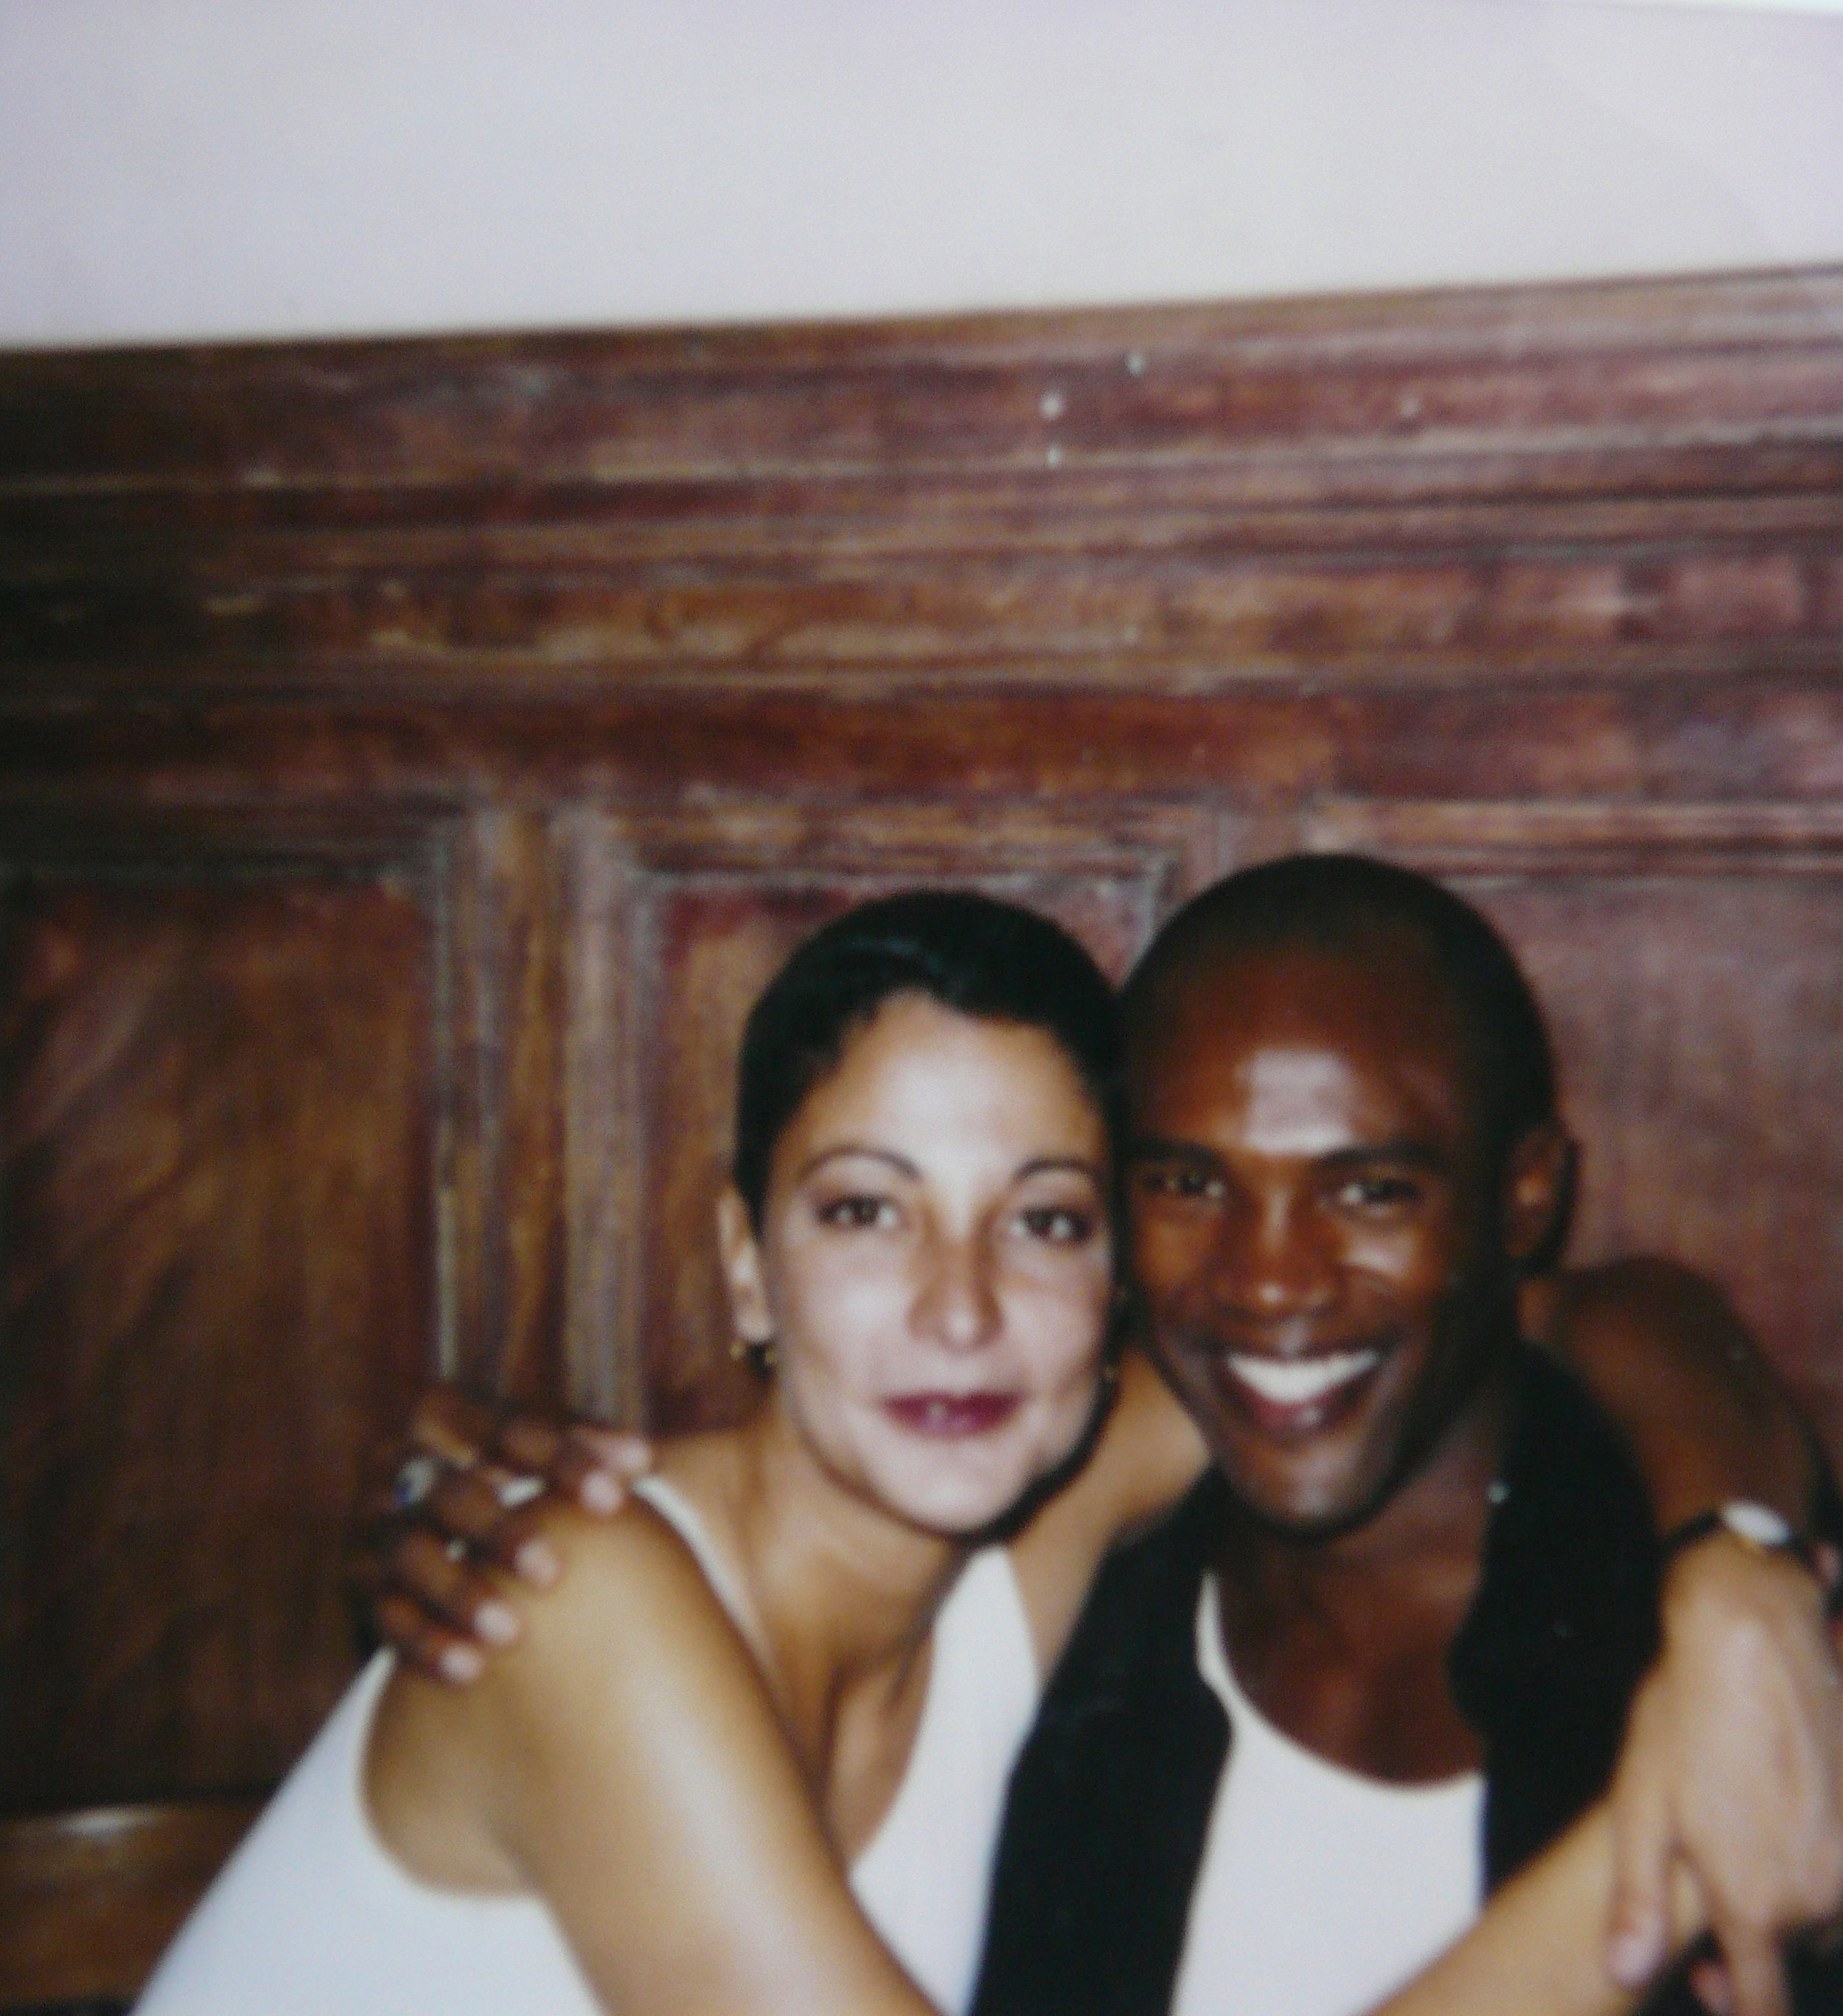 """""""Roger and me… at Cafe Tabac. Uniform of the '90s… cropped hair and wife beater."""" - Wanda Acosta, 2018. Image courtesy of Wanda Acosta."""